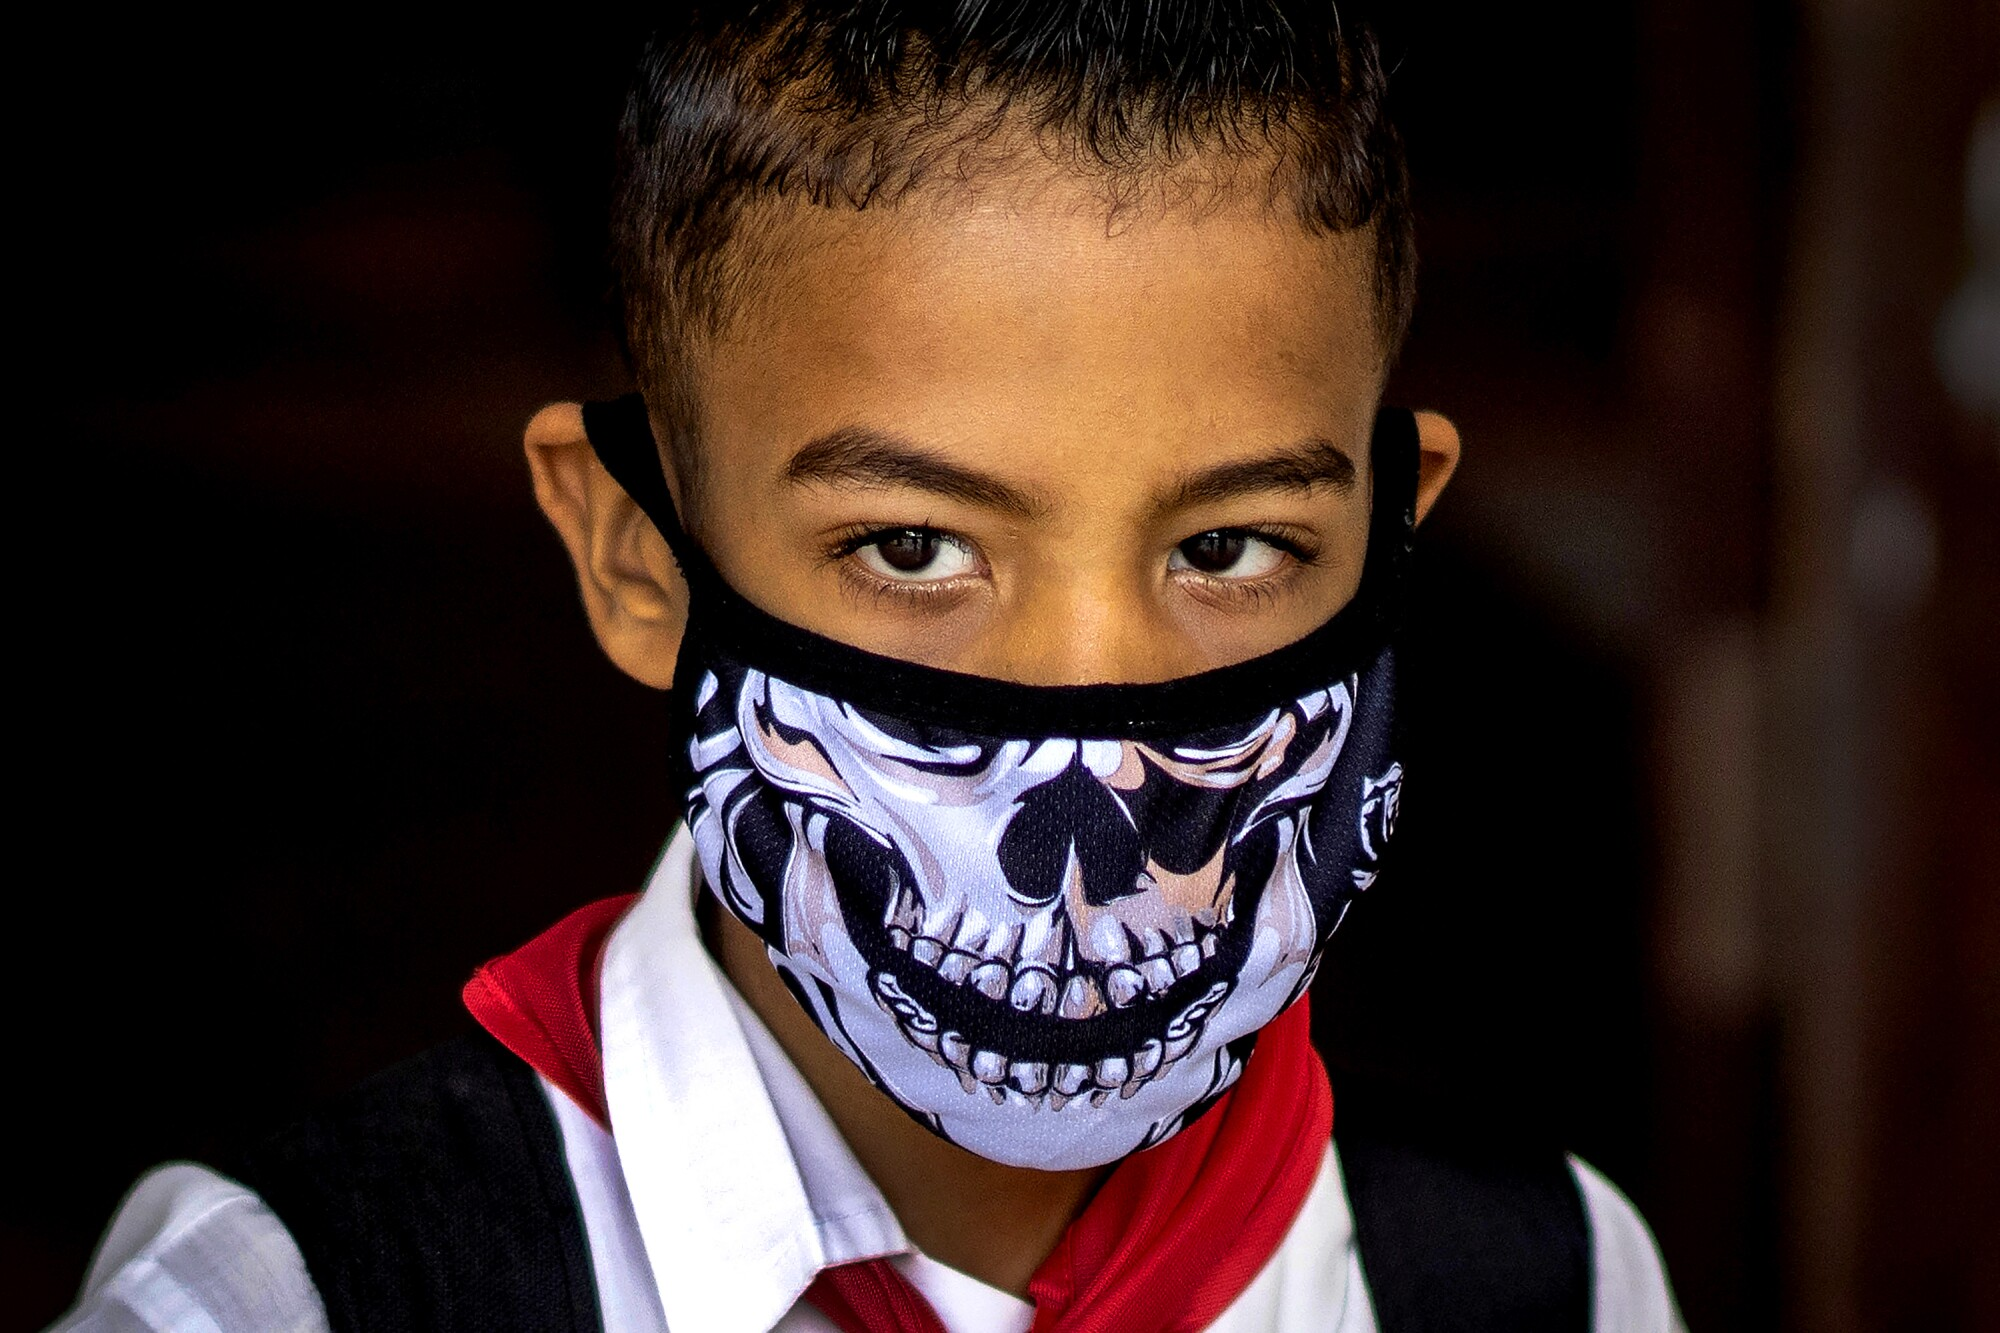 CUBA: A student in Havana wears a skull face mask as a precaution against the spread of the coronavirus as he leaves school for the day.